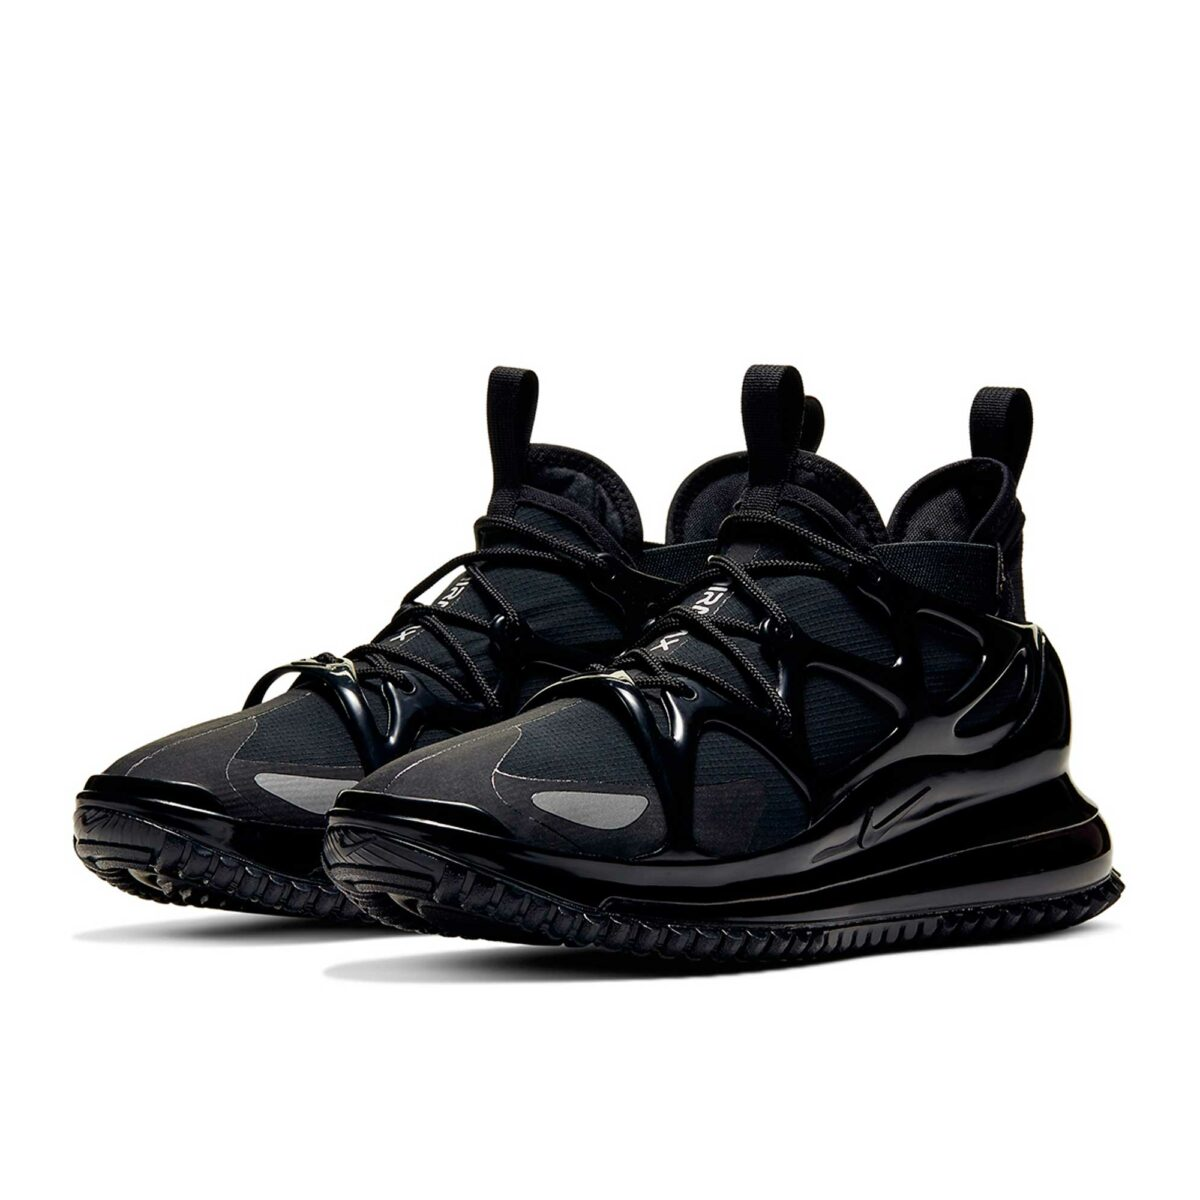 nike air max 720 horizon triple black BQ5808_004 купить